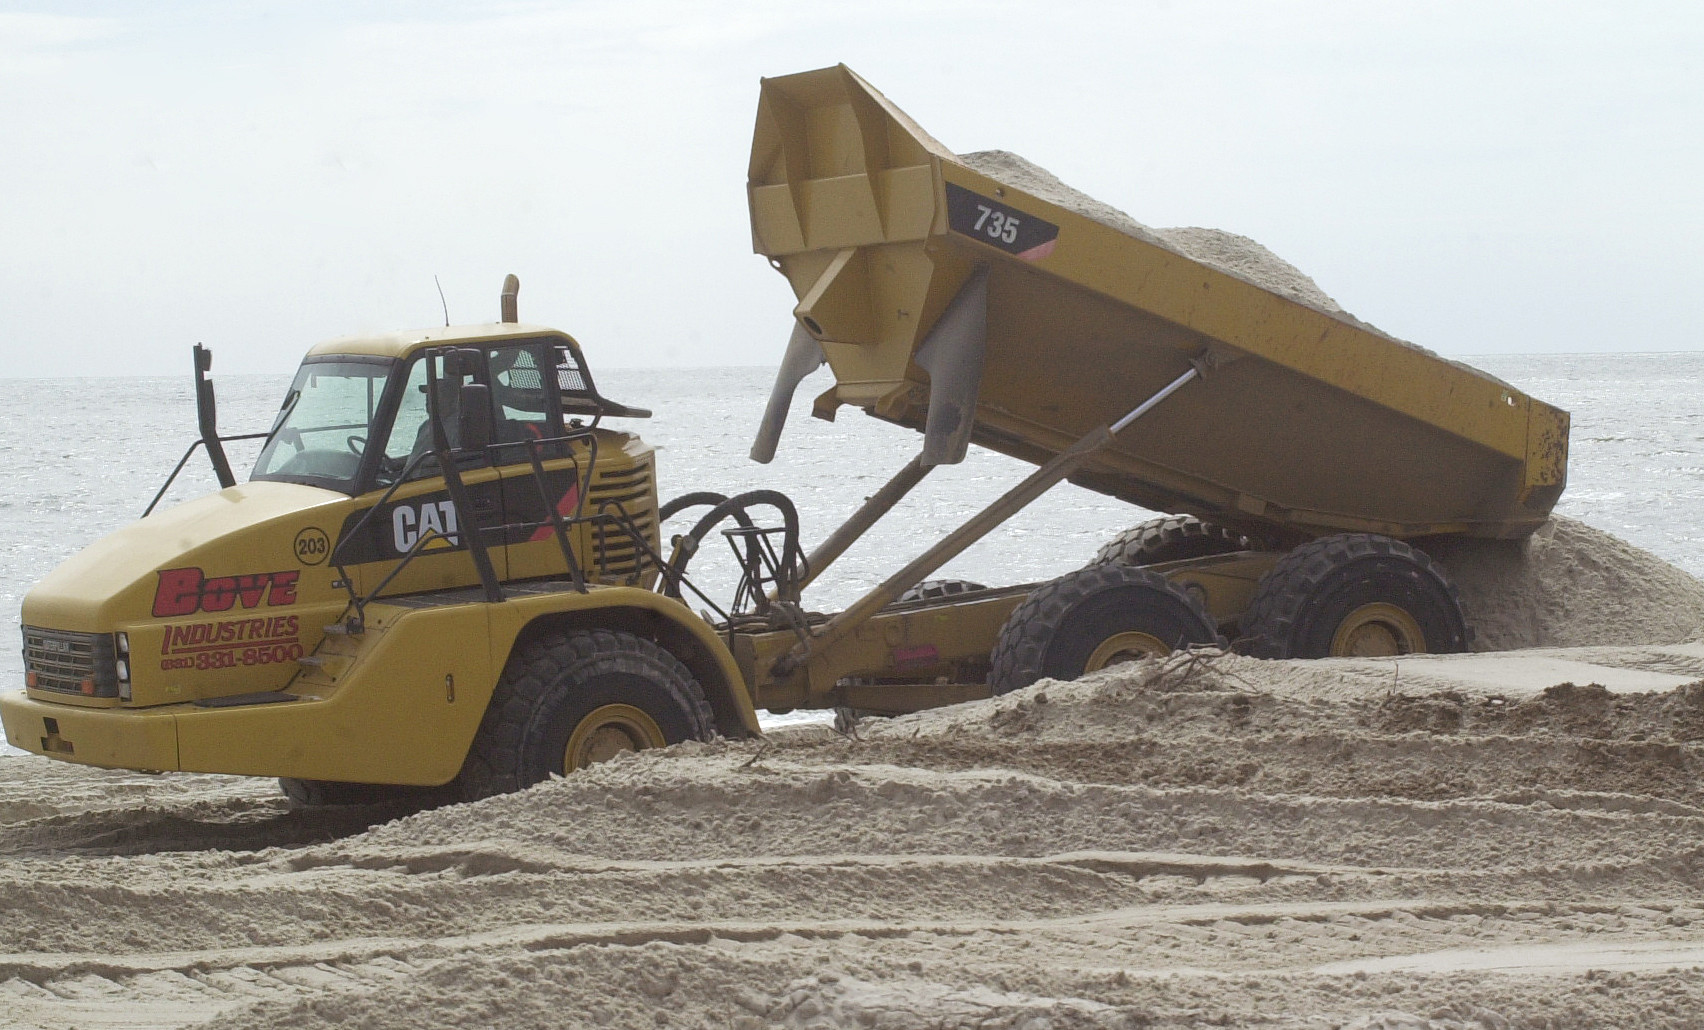 The state is using massive dump trucks to unload 800,000 cubic yards of sand to build dunes along the Ocean Parkway.